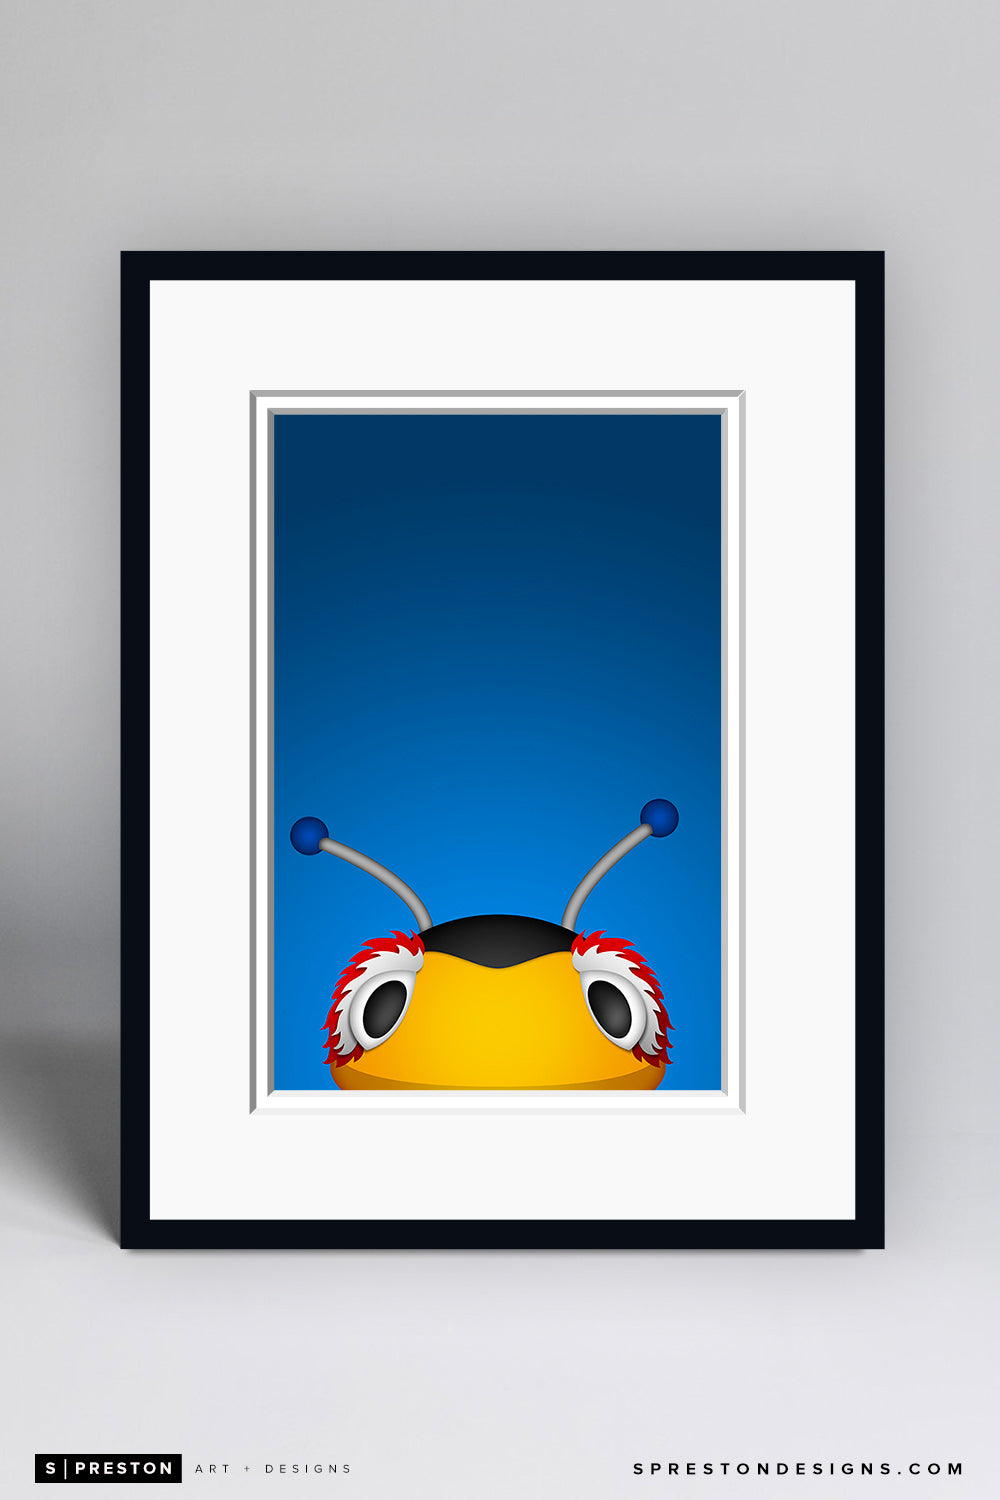 Thunderbug Art Print - Tampa Bay Lightning Mascot - S. Preston Art + Designs